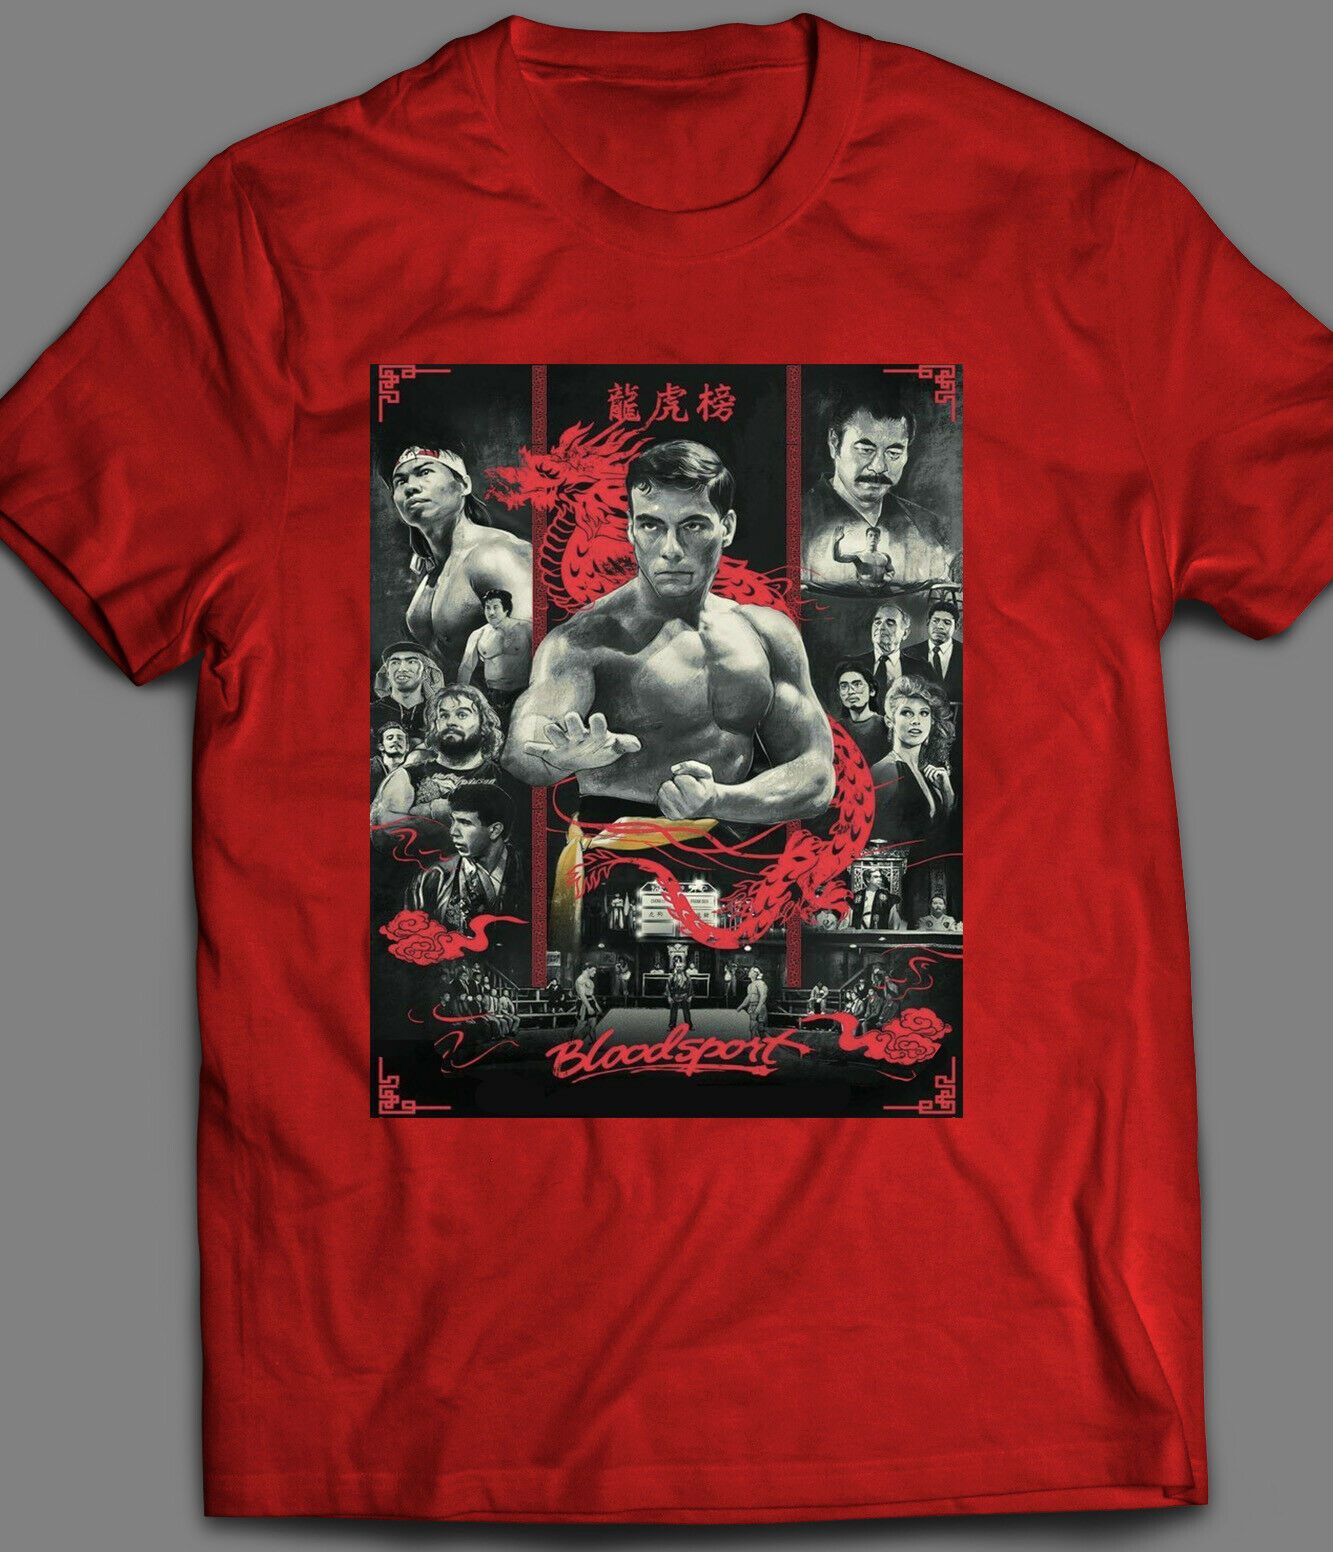 BLOOD SPORT MOVIE POSTER T-SHIRT* MANY COLORS image